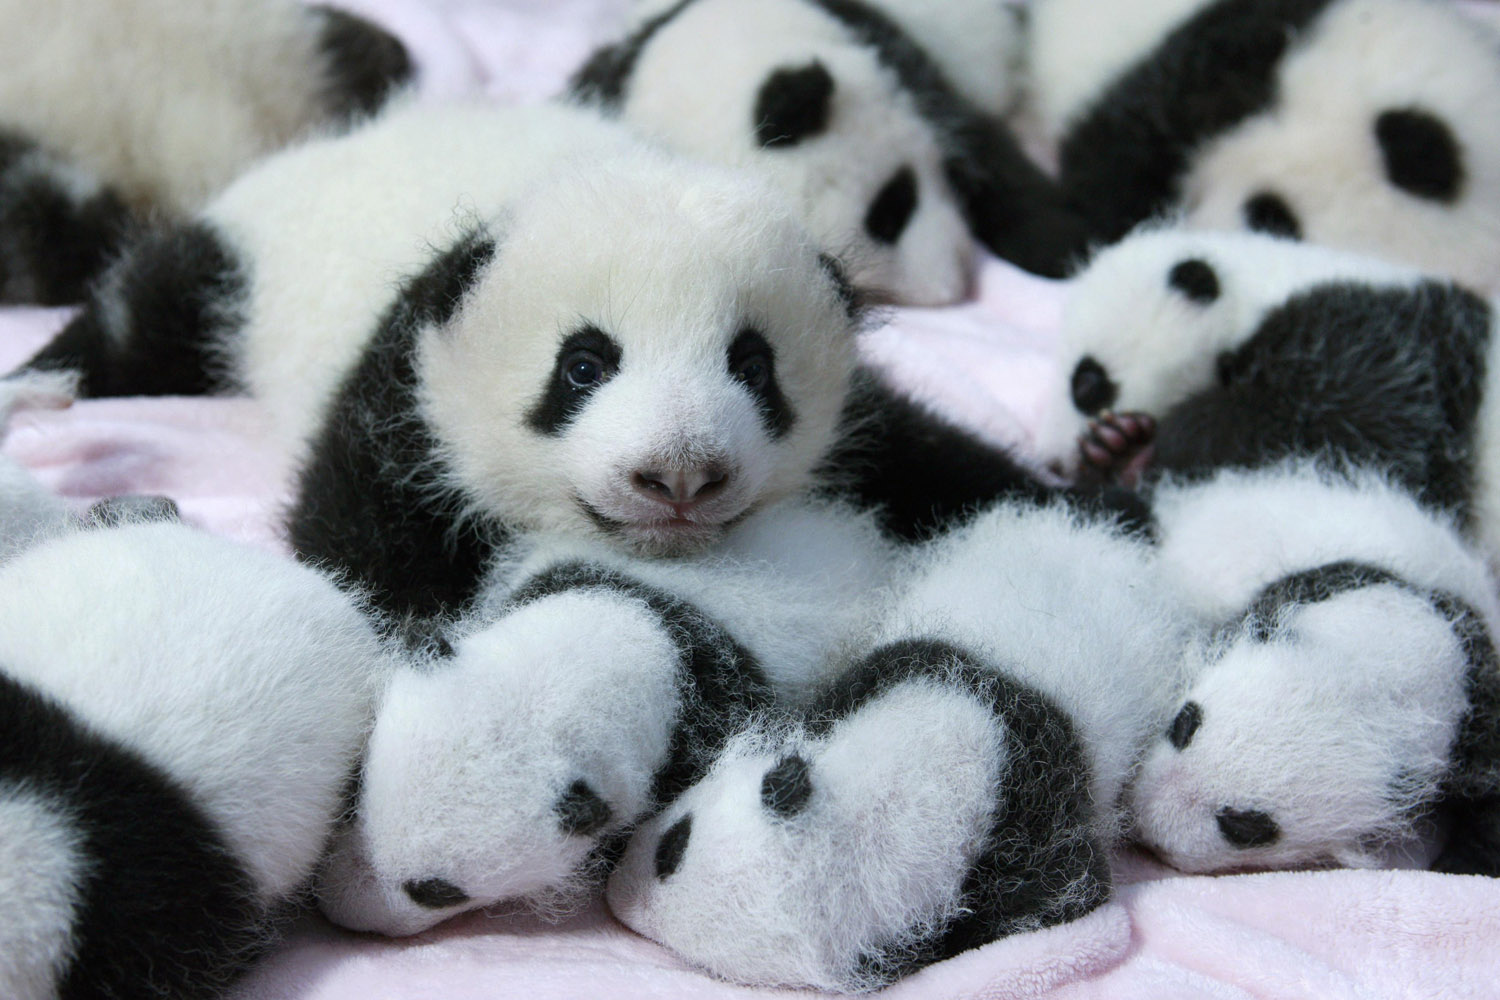 Sept. 23, 2013. Giant panda cubs lie in a crib at Chengdu Research Base of Giant Panda Breeding in Chengdu, Sichuan province, China.